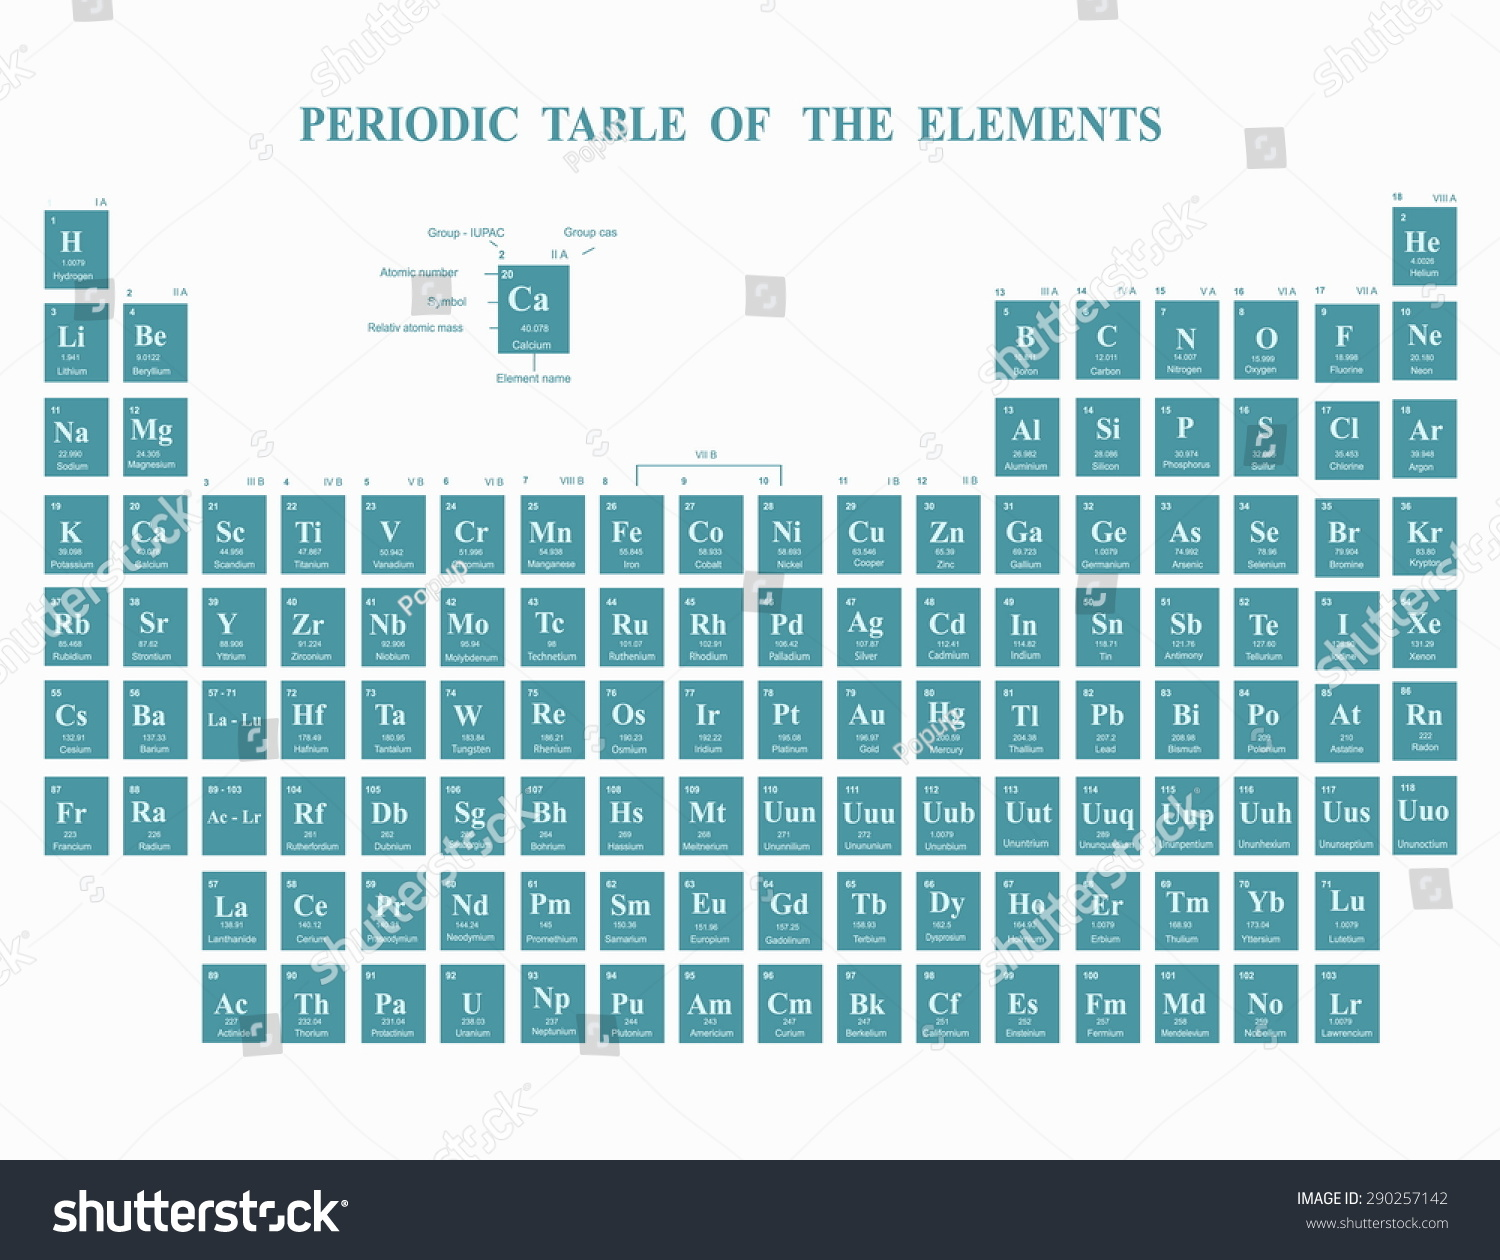 Periodic table unununium image collections periodic table images periodic table unununium gallery periodic table images element k periodic table image collections periodic table images gamestrikefo Image collections